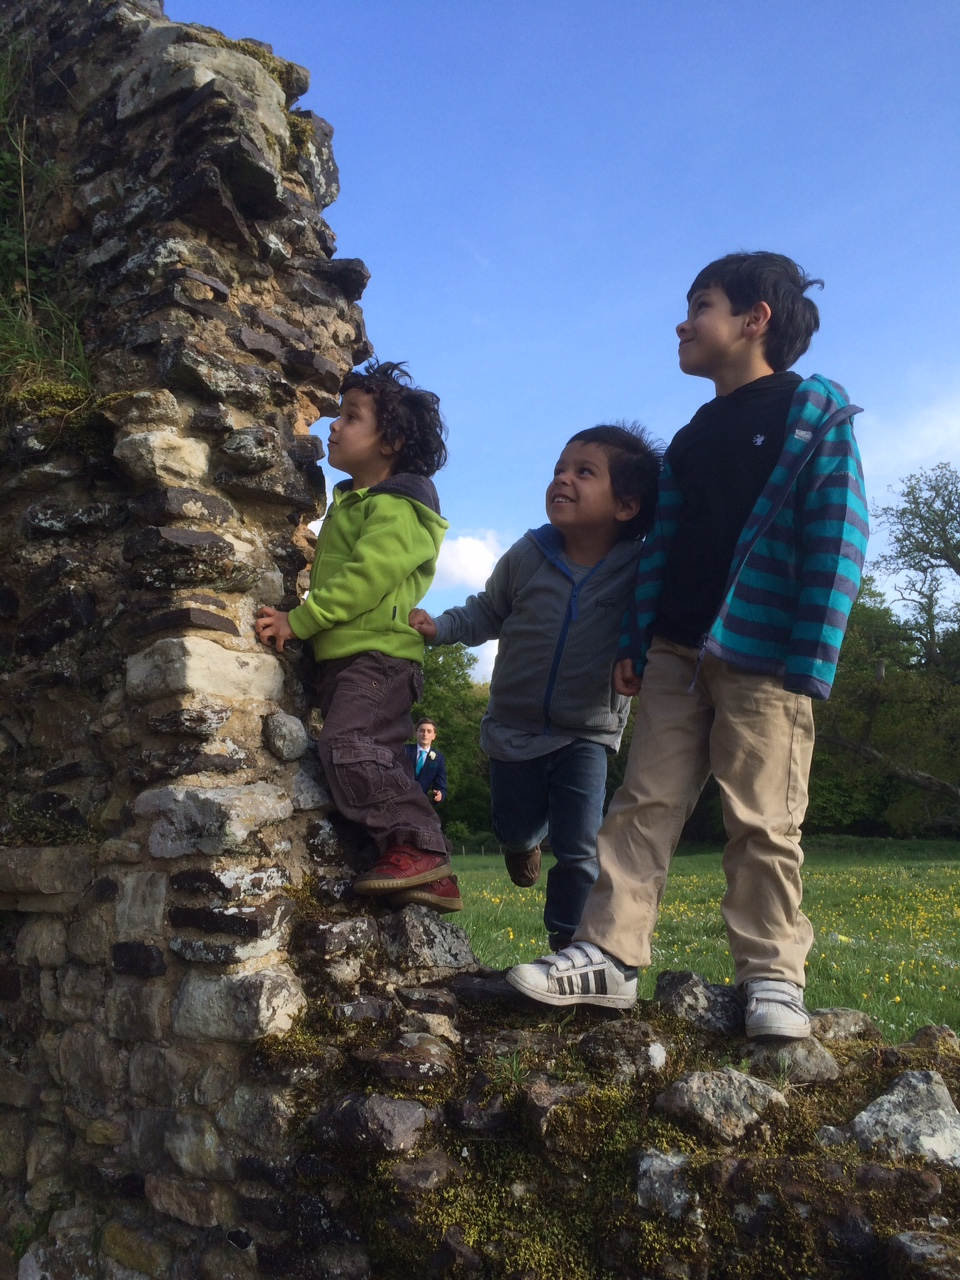 waverley abbey ruins and trespass outdoor clothing